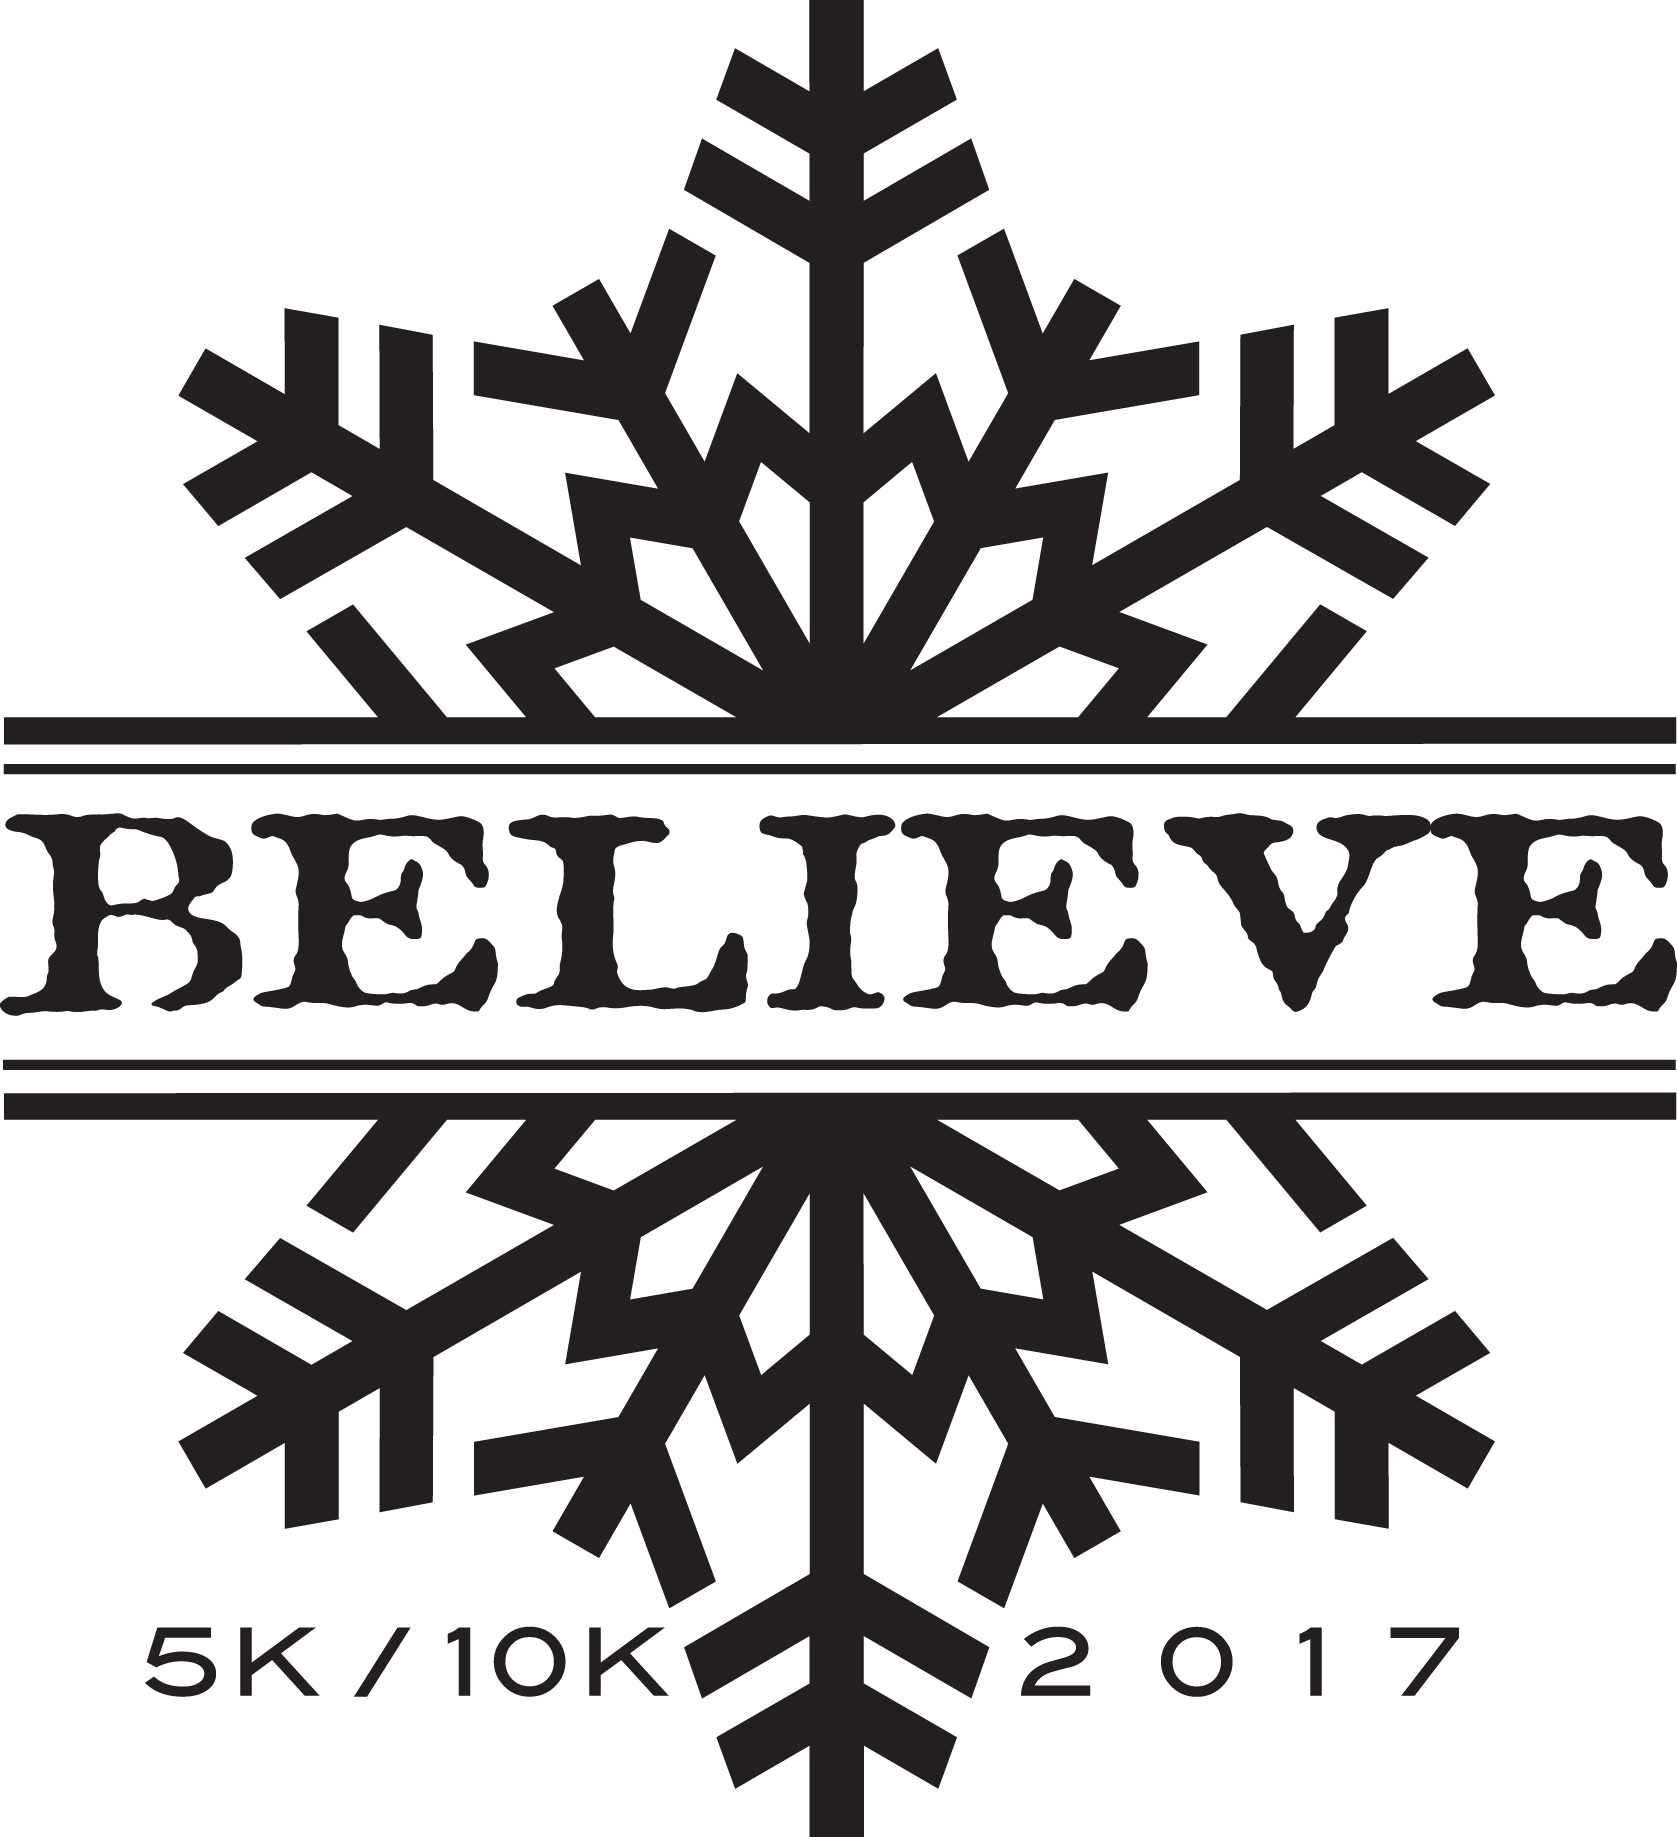 The Believe Run